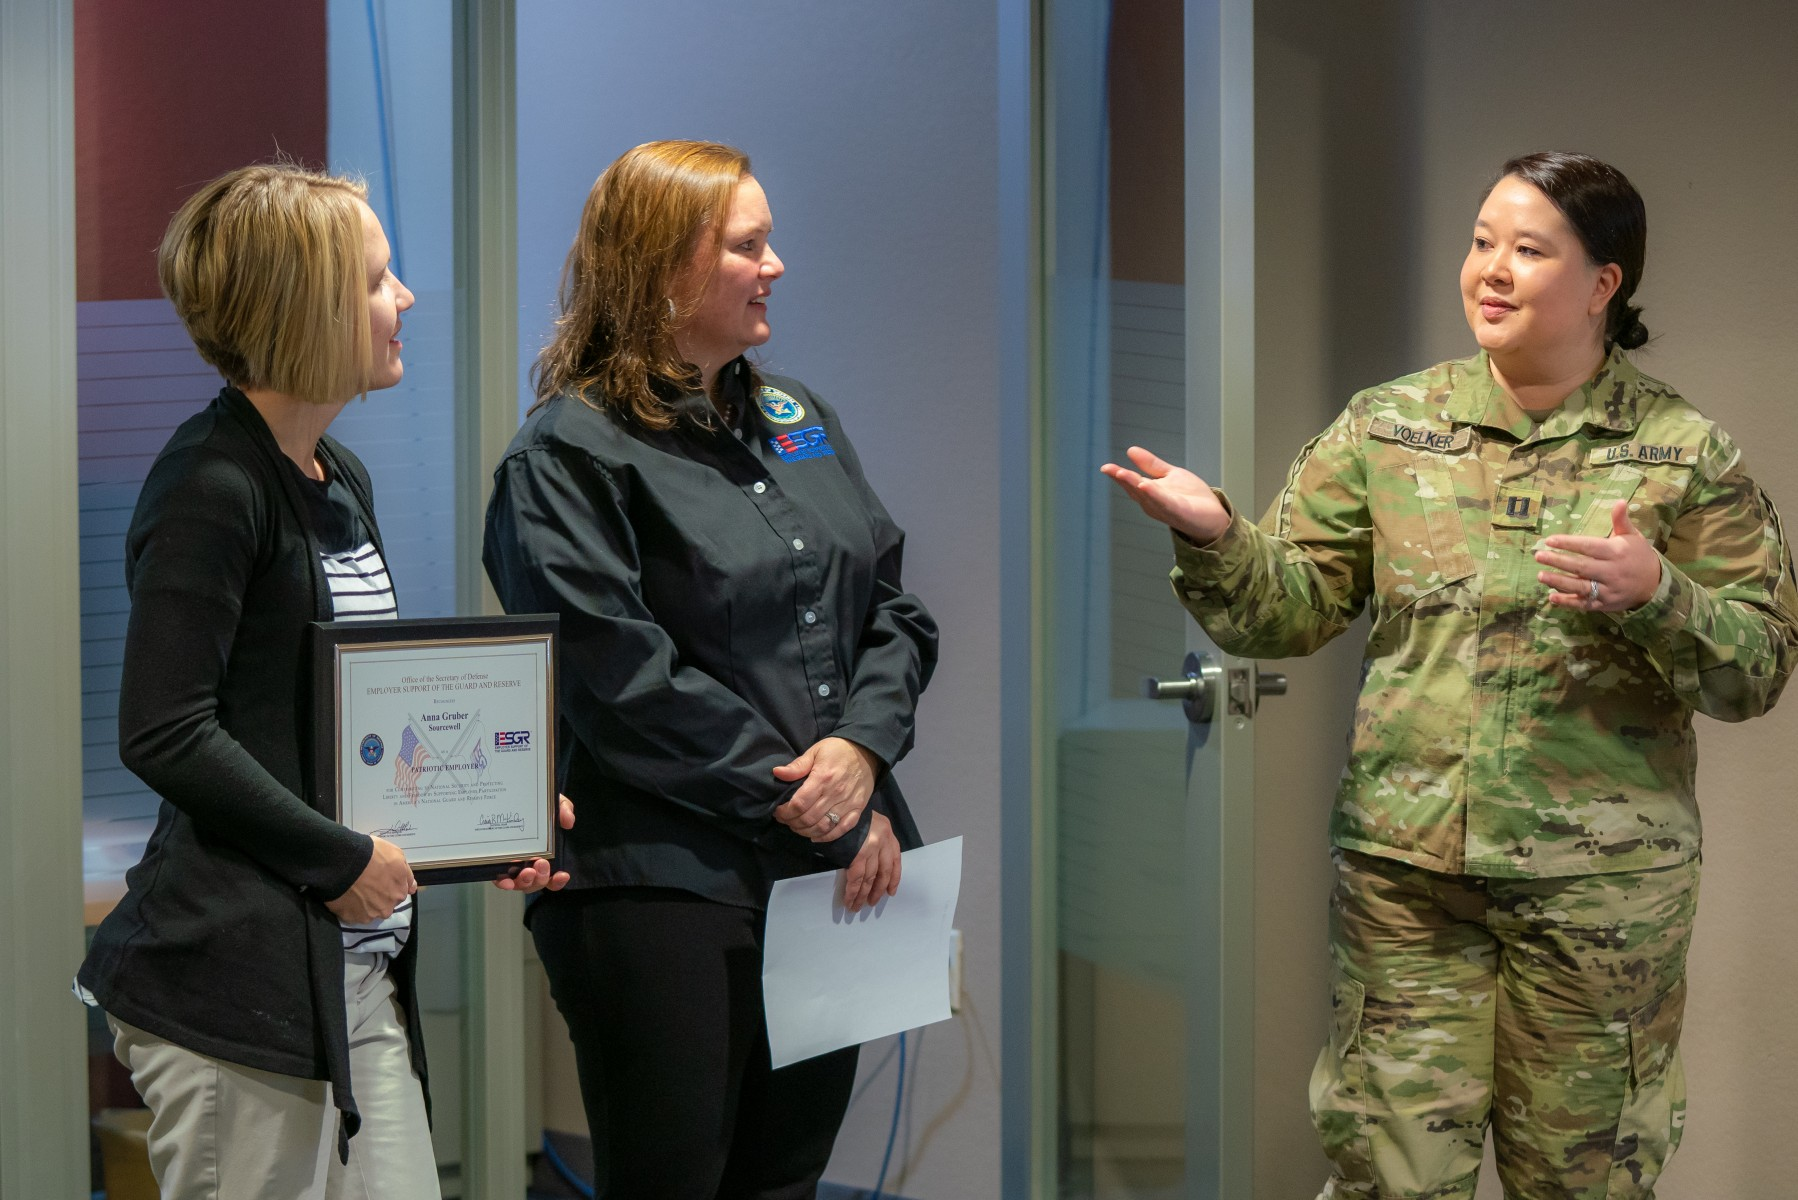 Army Reserve Captain Kayla Voelker (right) shared words of appreciation with her Sourcewell supervisor Anna Gruber (left), as Sourcewell Manager of Human Resources and ESGR volunteer Rebecca Cromwell (center) looked on. Captain Voelker presented Gruber with a Patriot Award at Sourcewell on Feb. 14.